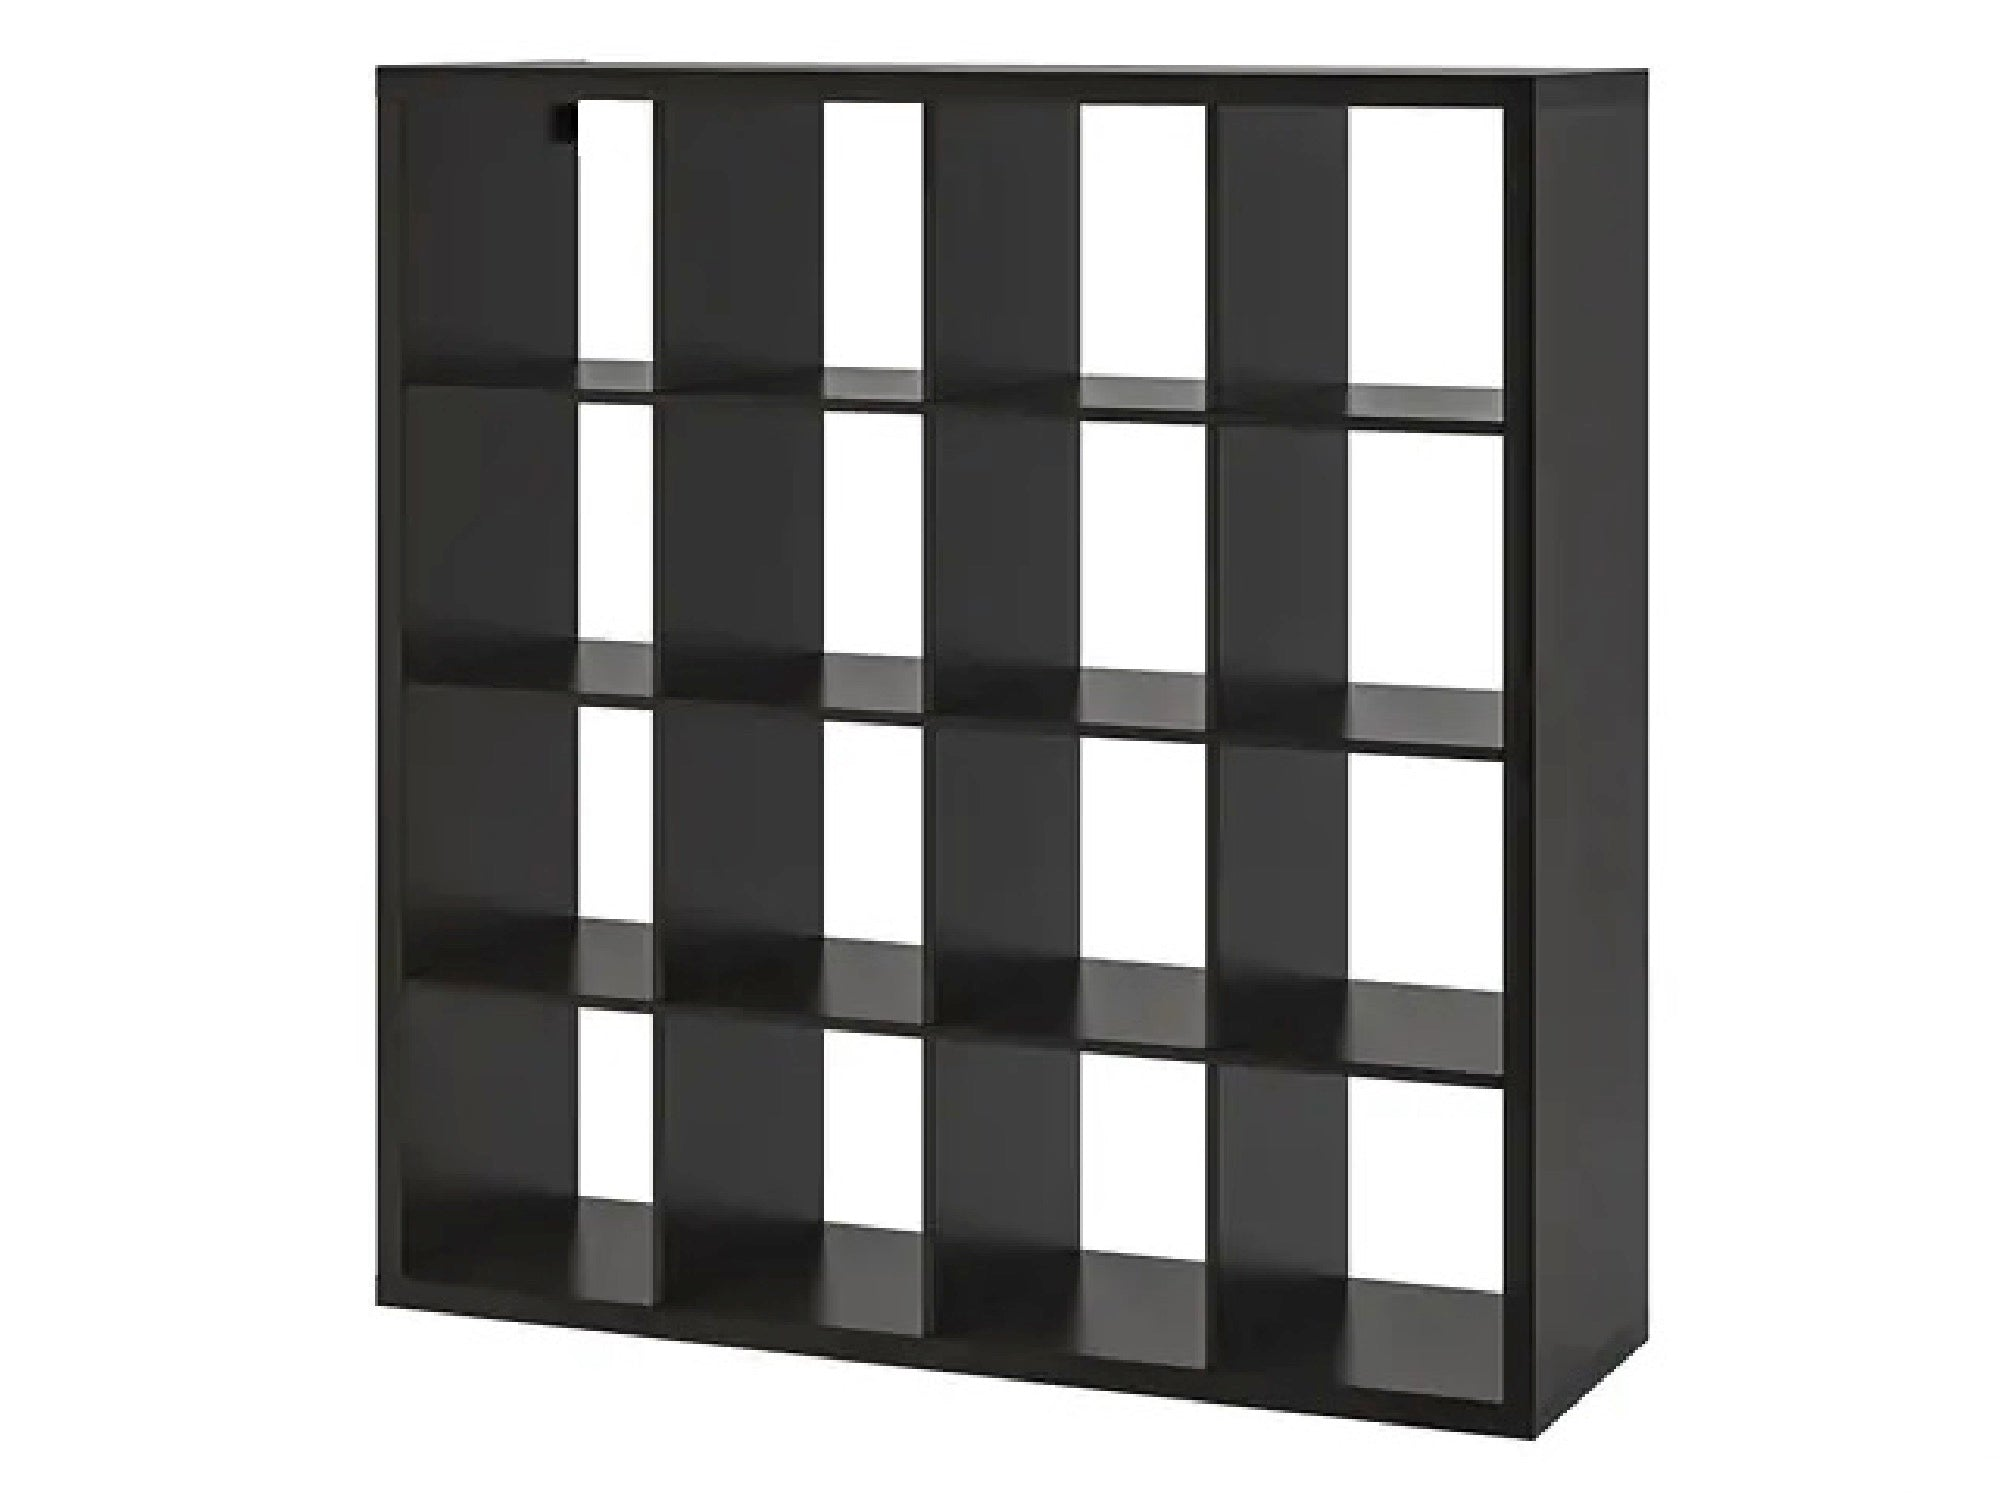 PEACHTREE 16 SLOT DISPLAY UNIT - BLACK